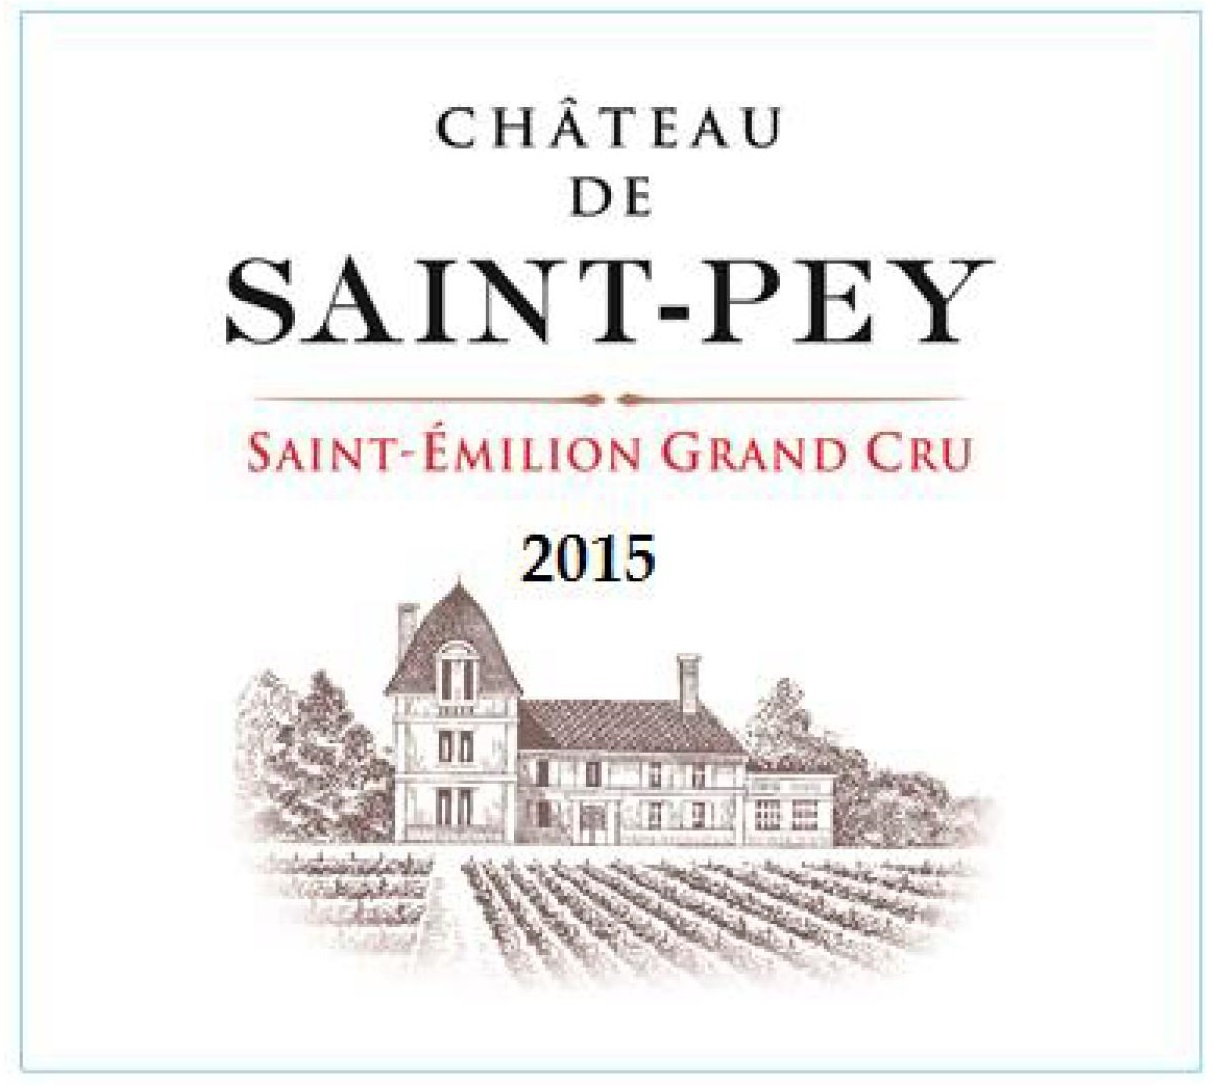 Château de Saint-Pey AOC Saint-Emilion Grand Cru Red 2015